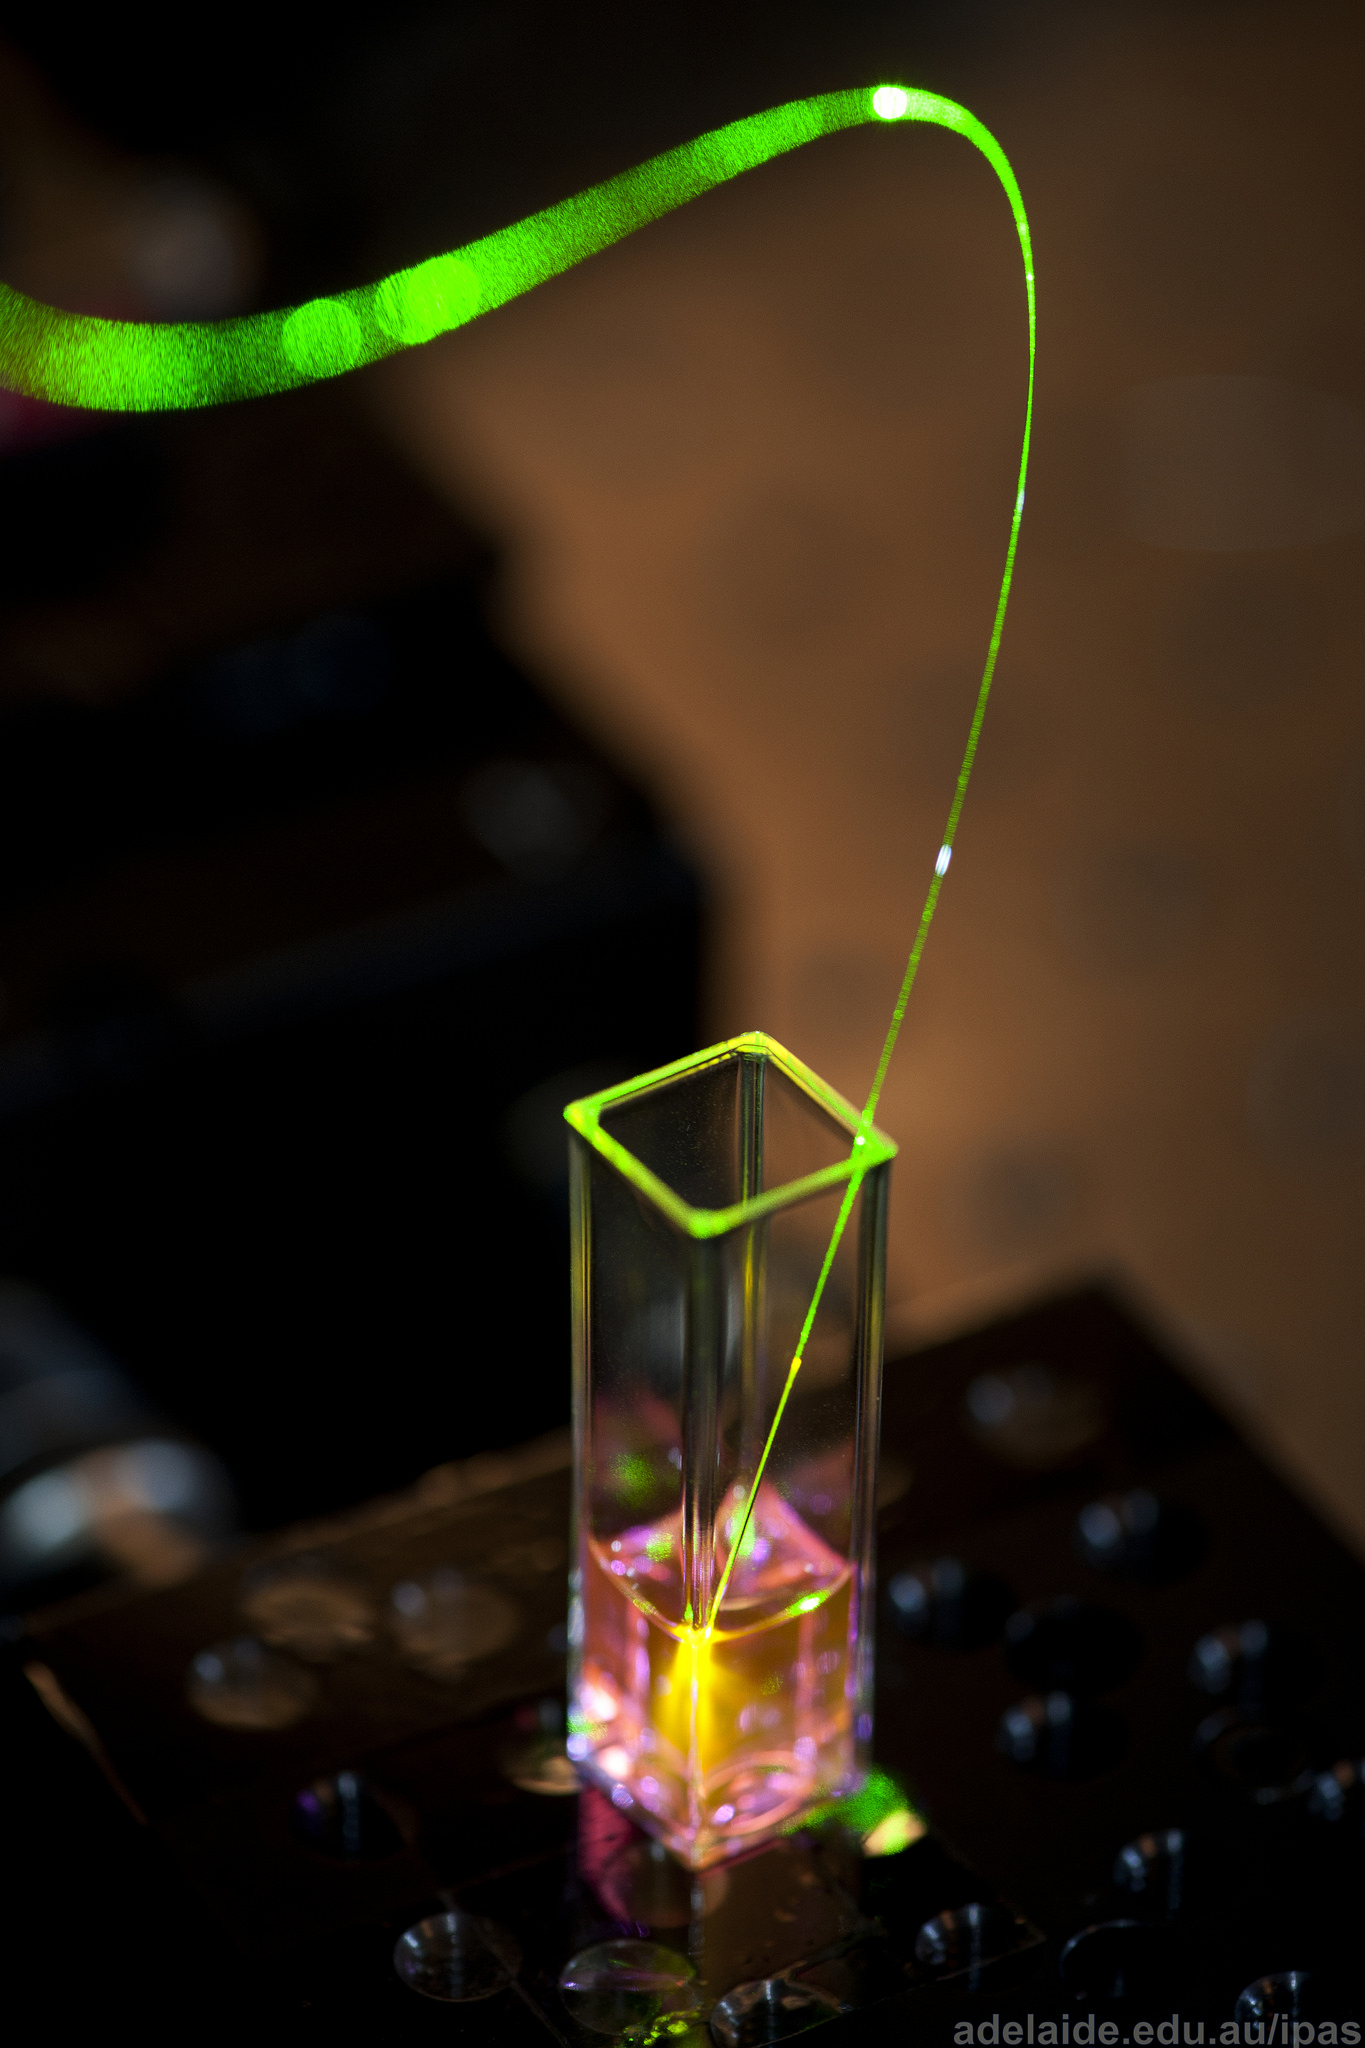 Photo by IPAS institute for photonics & advanced sensing, Creative Commons Attribution, from Flickr: https://flic.kr/p/okt6j5